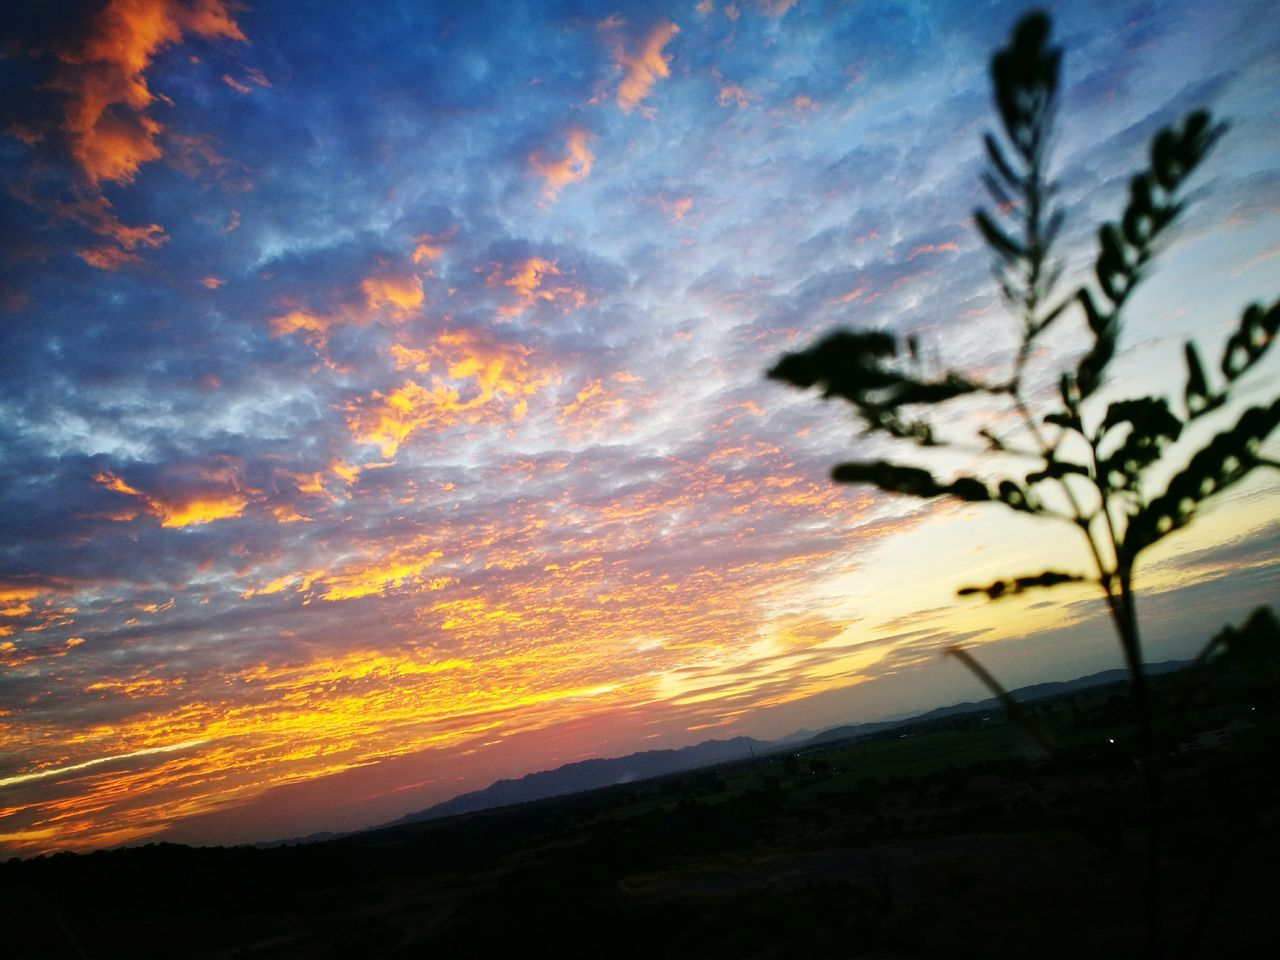 Sunset Sky Cloud - Sky Tree Nature Beauty In Nature Silhouette No People Dramatic Sky Scenics Outdoors Human Hand People Adult One Person Adults Only Human Body Part Leisure Activity Day My Year My View TakeoverMusic Close-up Young Adult First Eyeem Photo Waiting Game